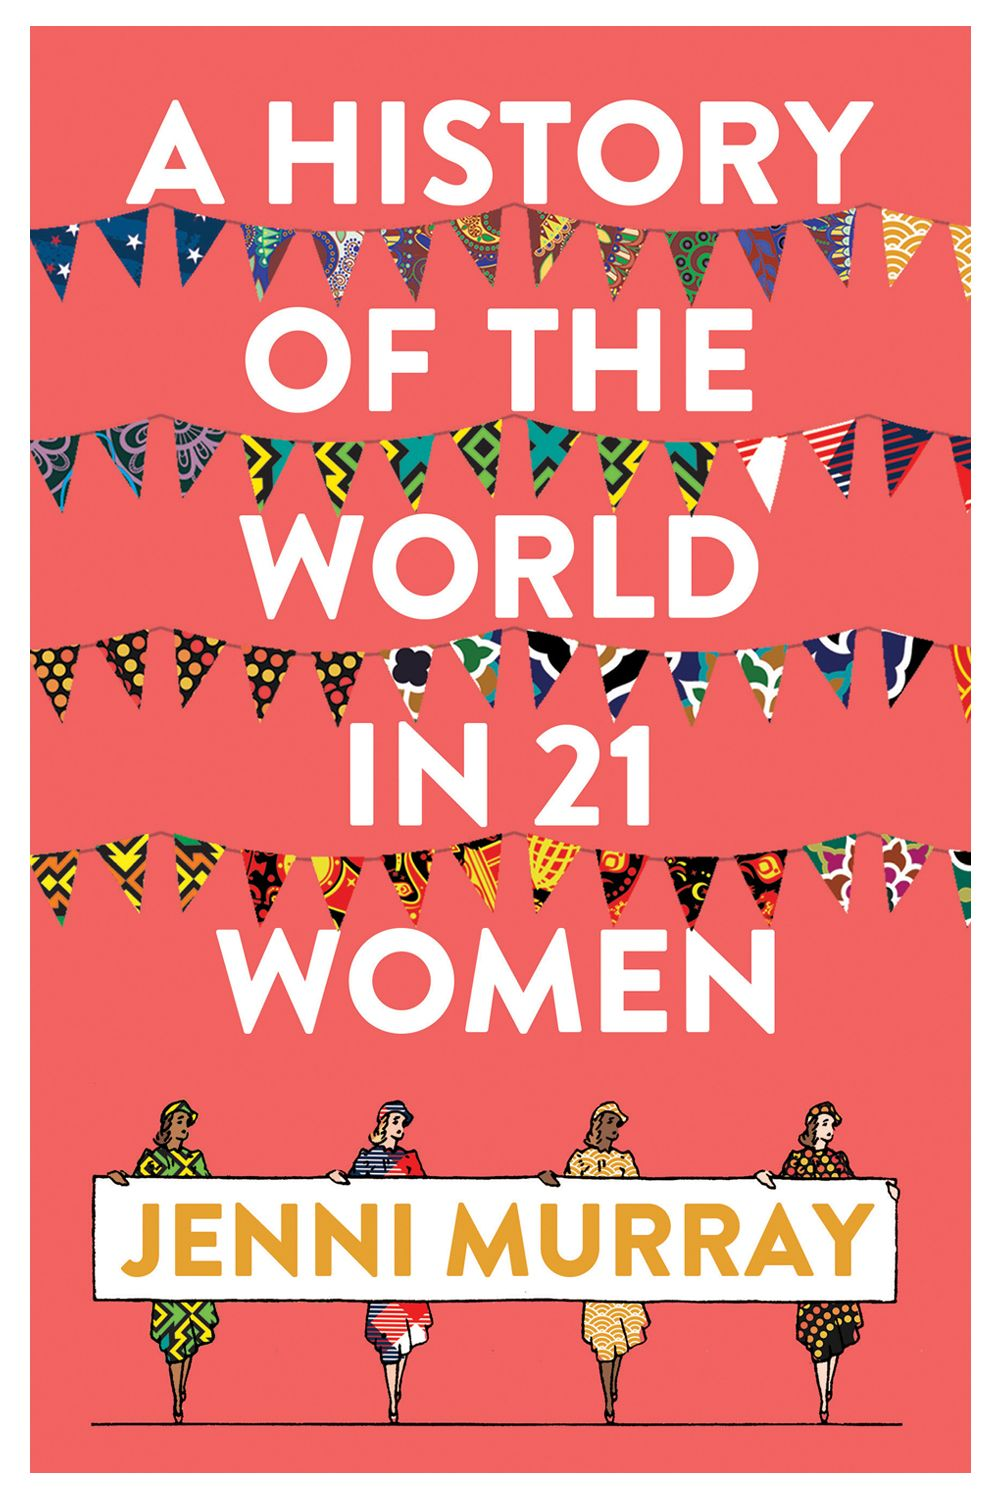 A History of the World in 21 Women, Jenni Murray